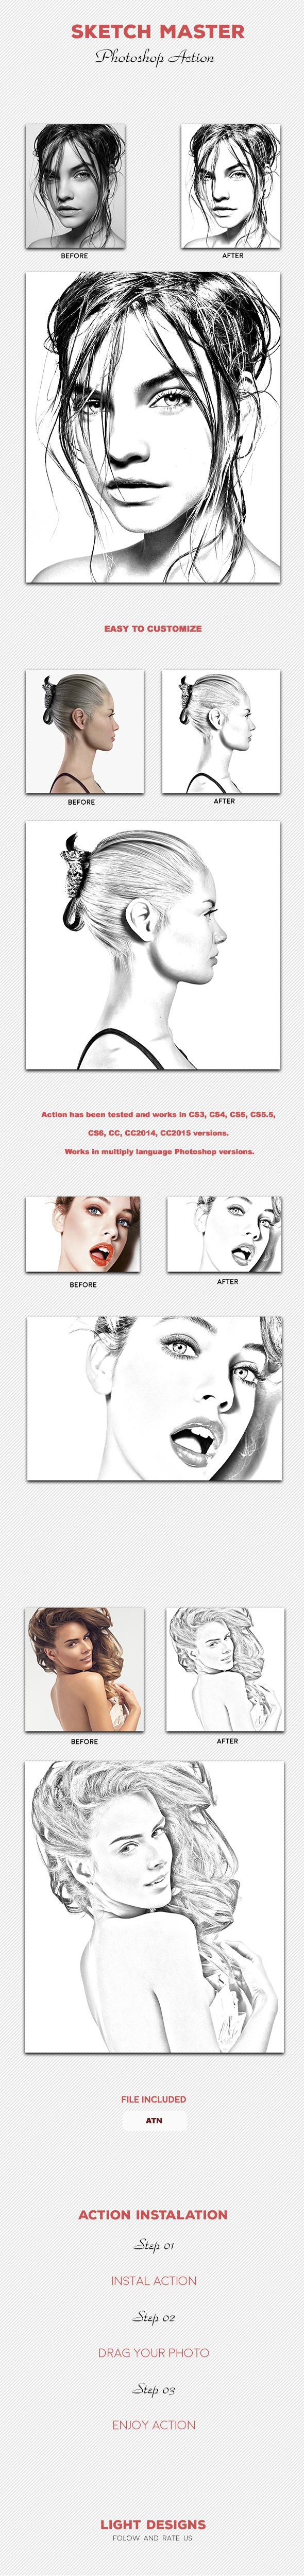 244 best photoshop tips and ideas images on pinterest photoshop sketch master photoshop action 03 photoshop actionsphotoshop tutorialadobe baditri Images